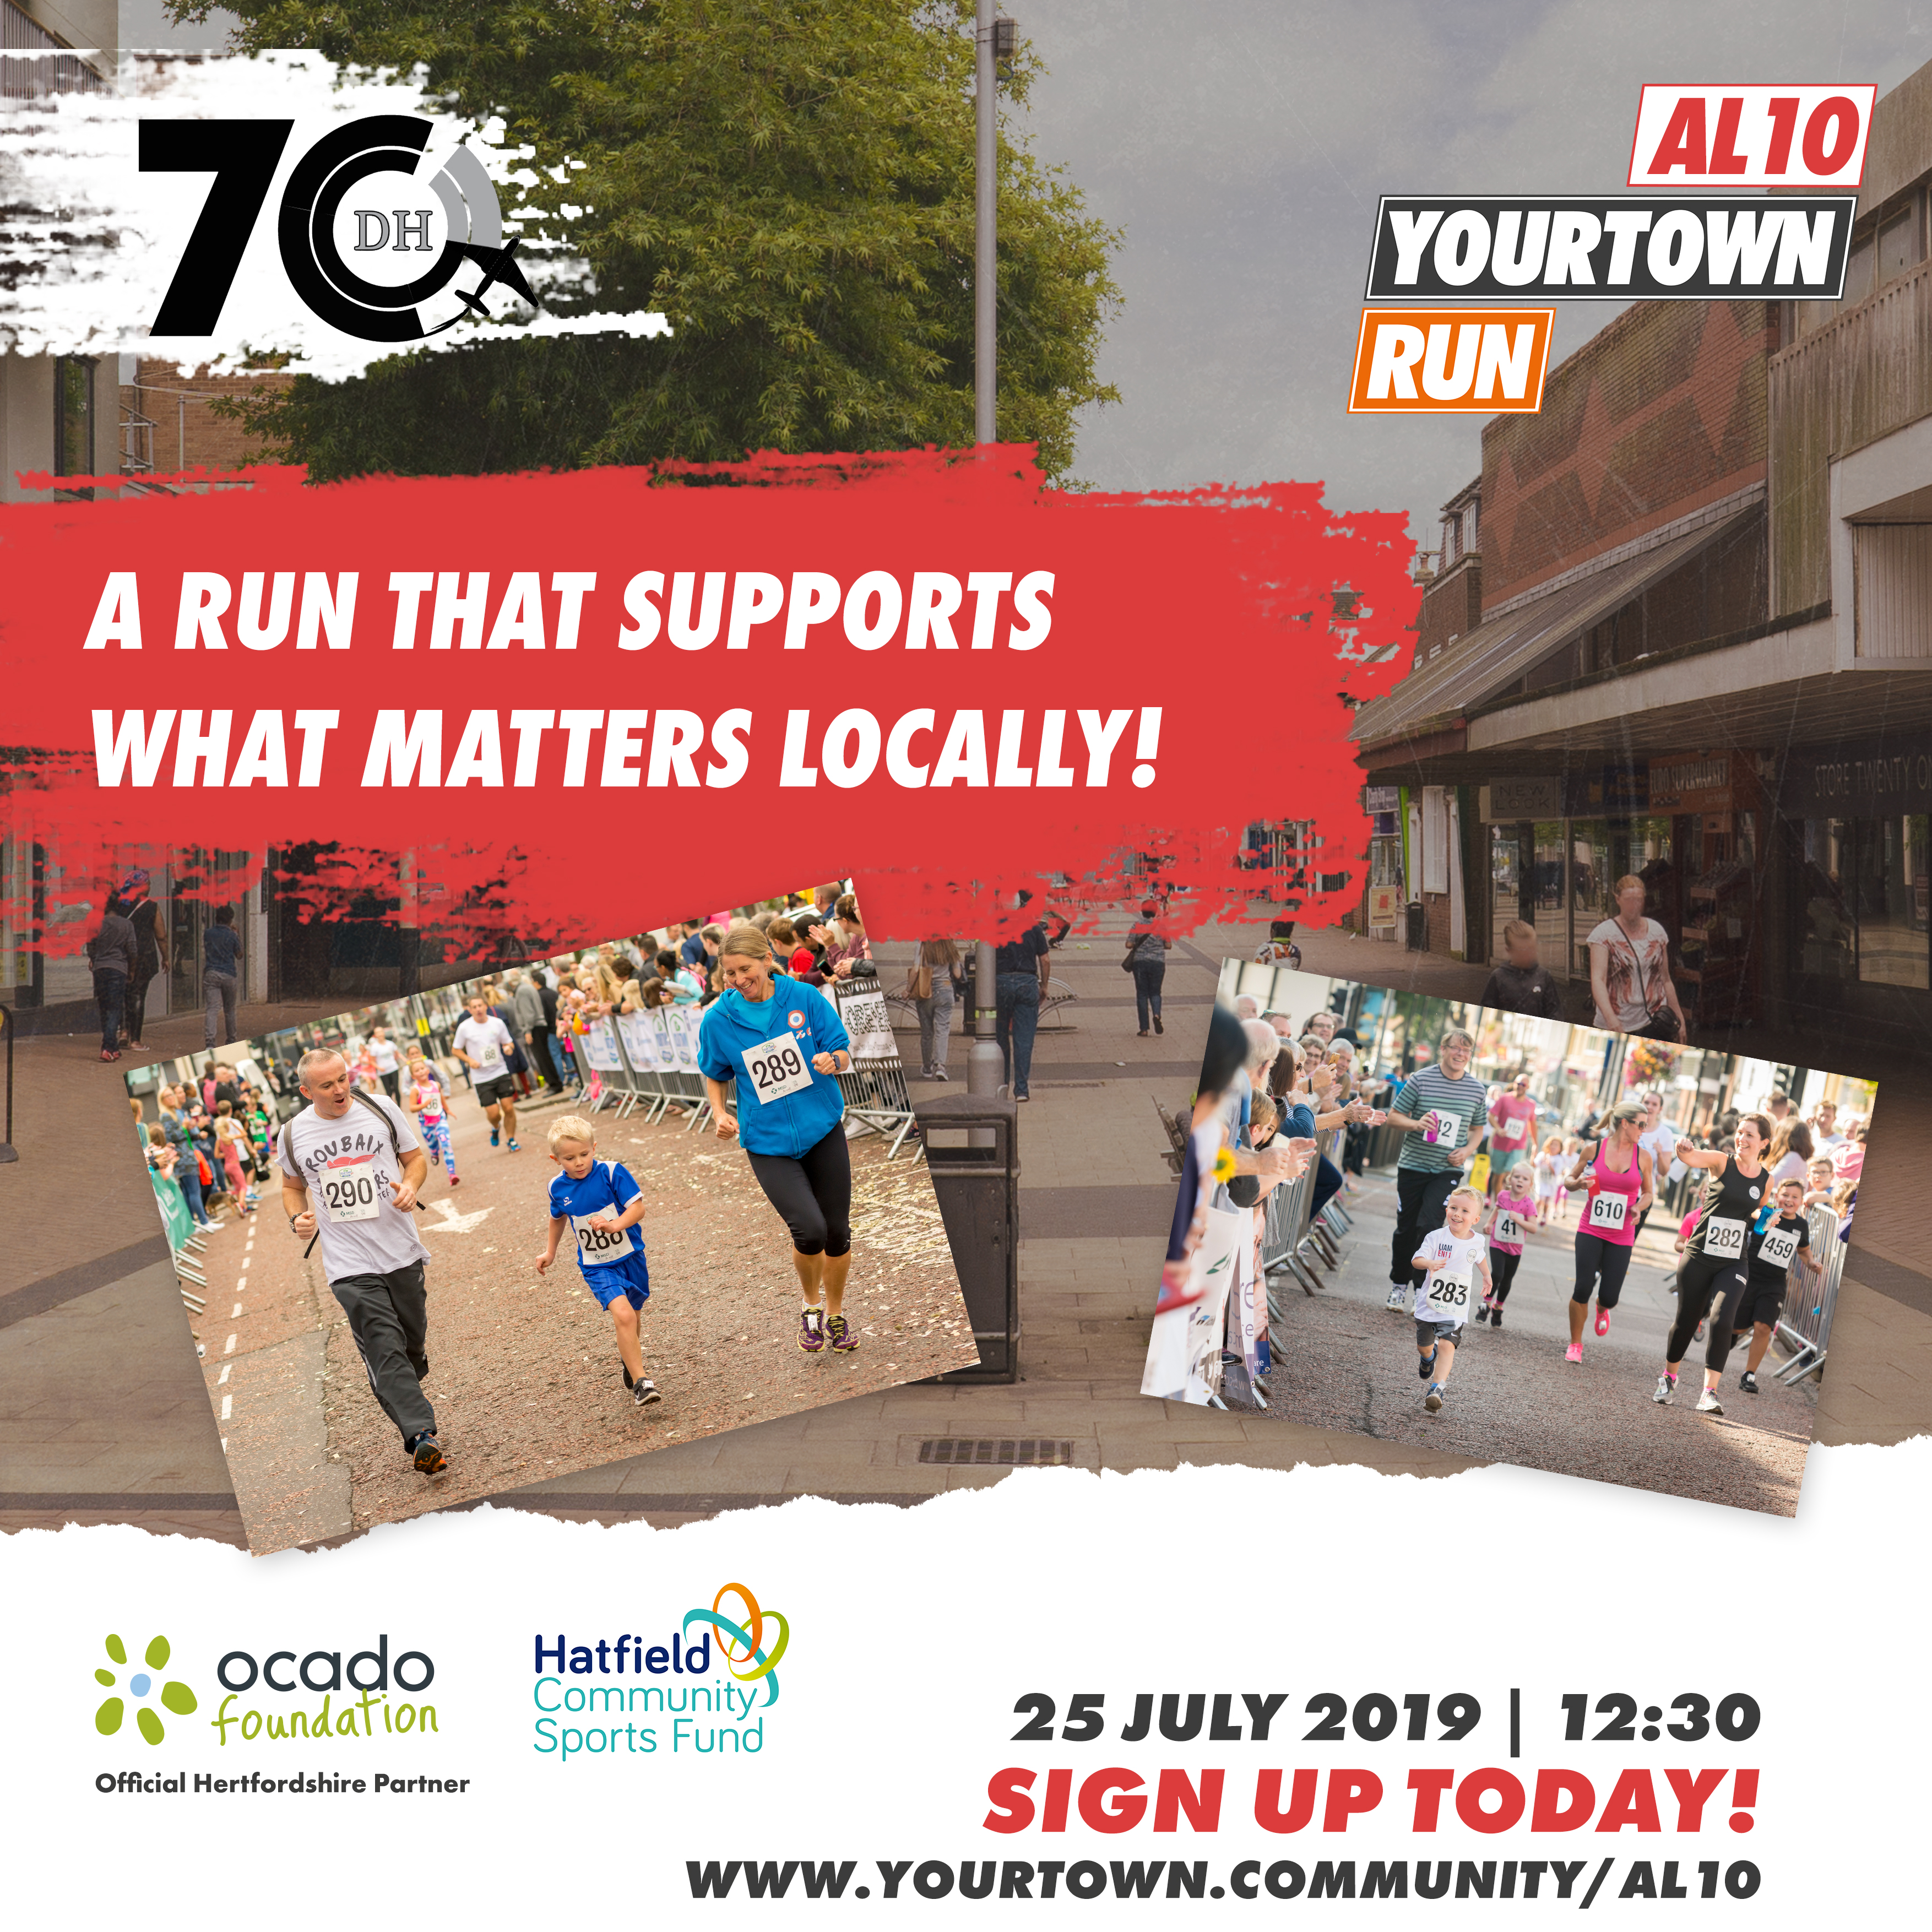 Your Town Hatfield 70th Anniversary Run Poster